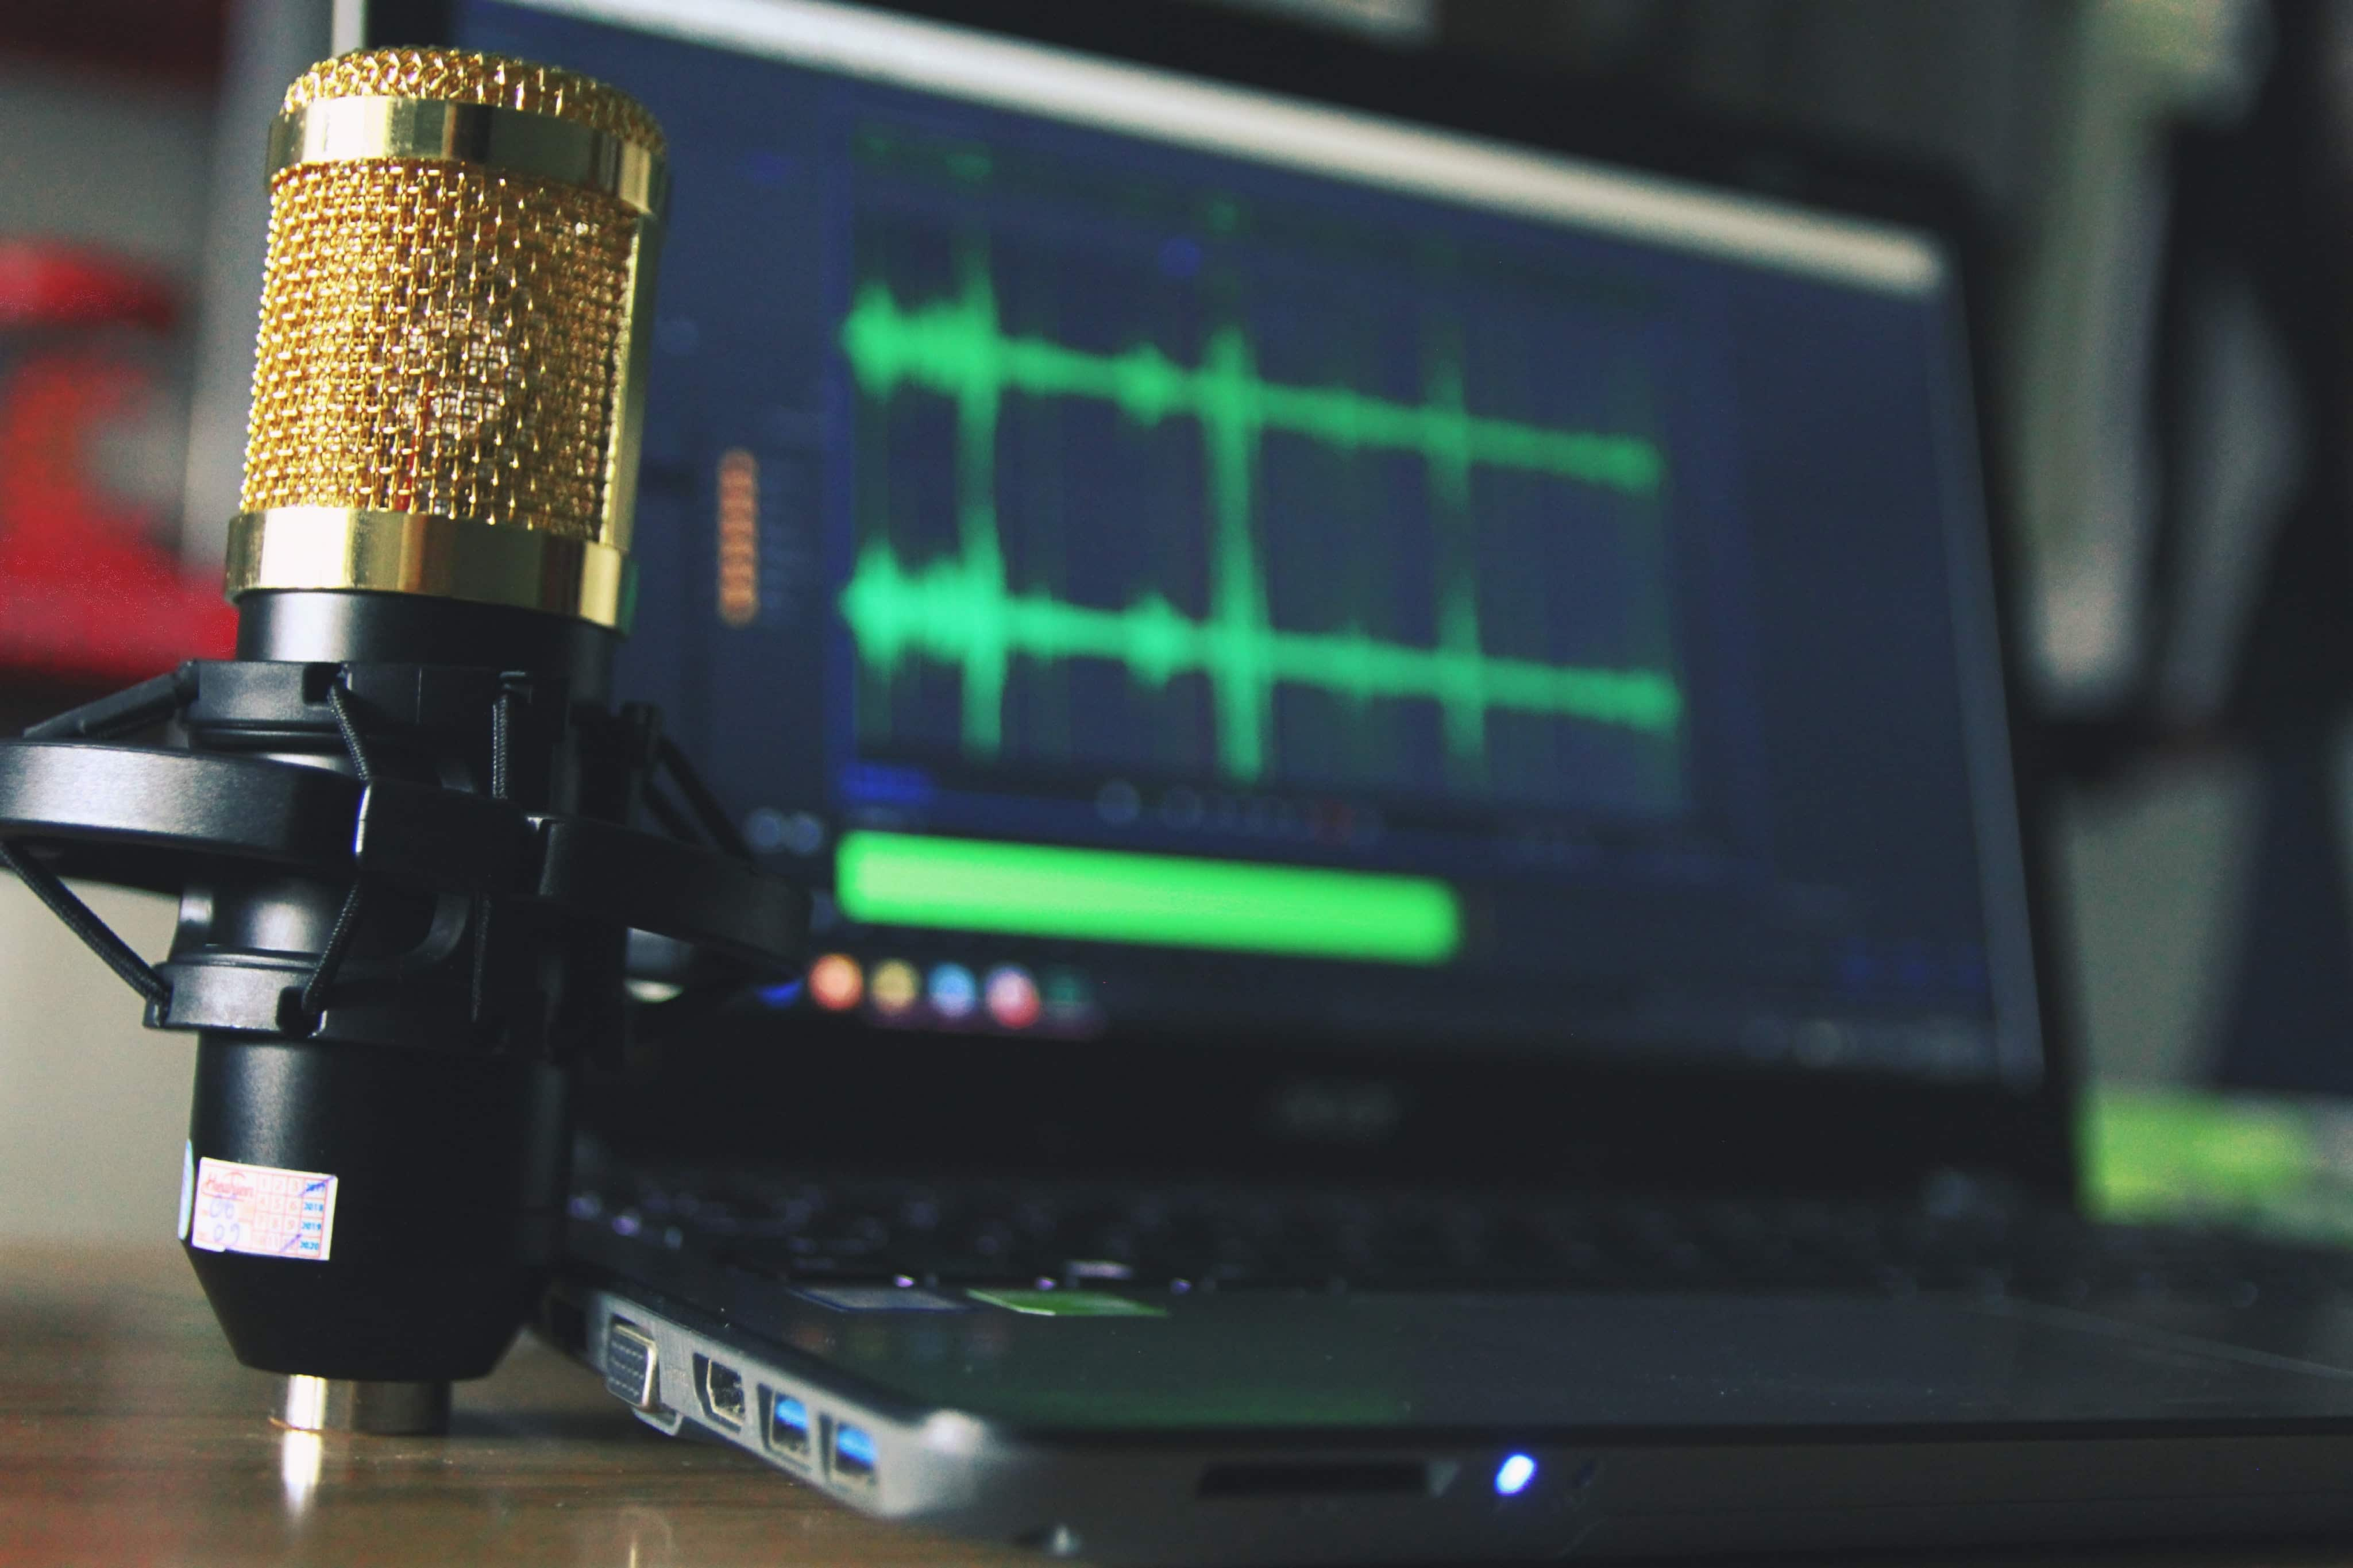 Podcast Advertising Grew by 53% in 2018. What Does It Mean for Your Marketing Plan?